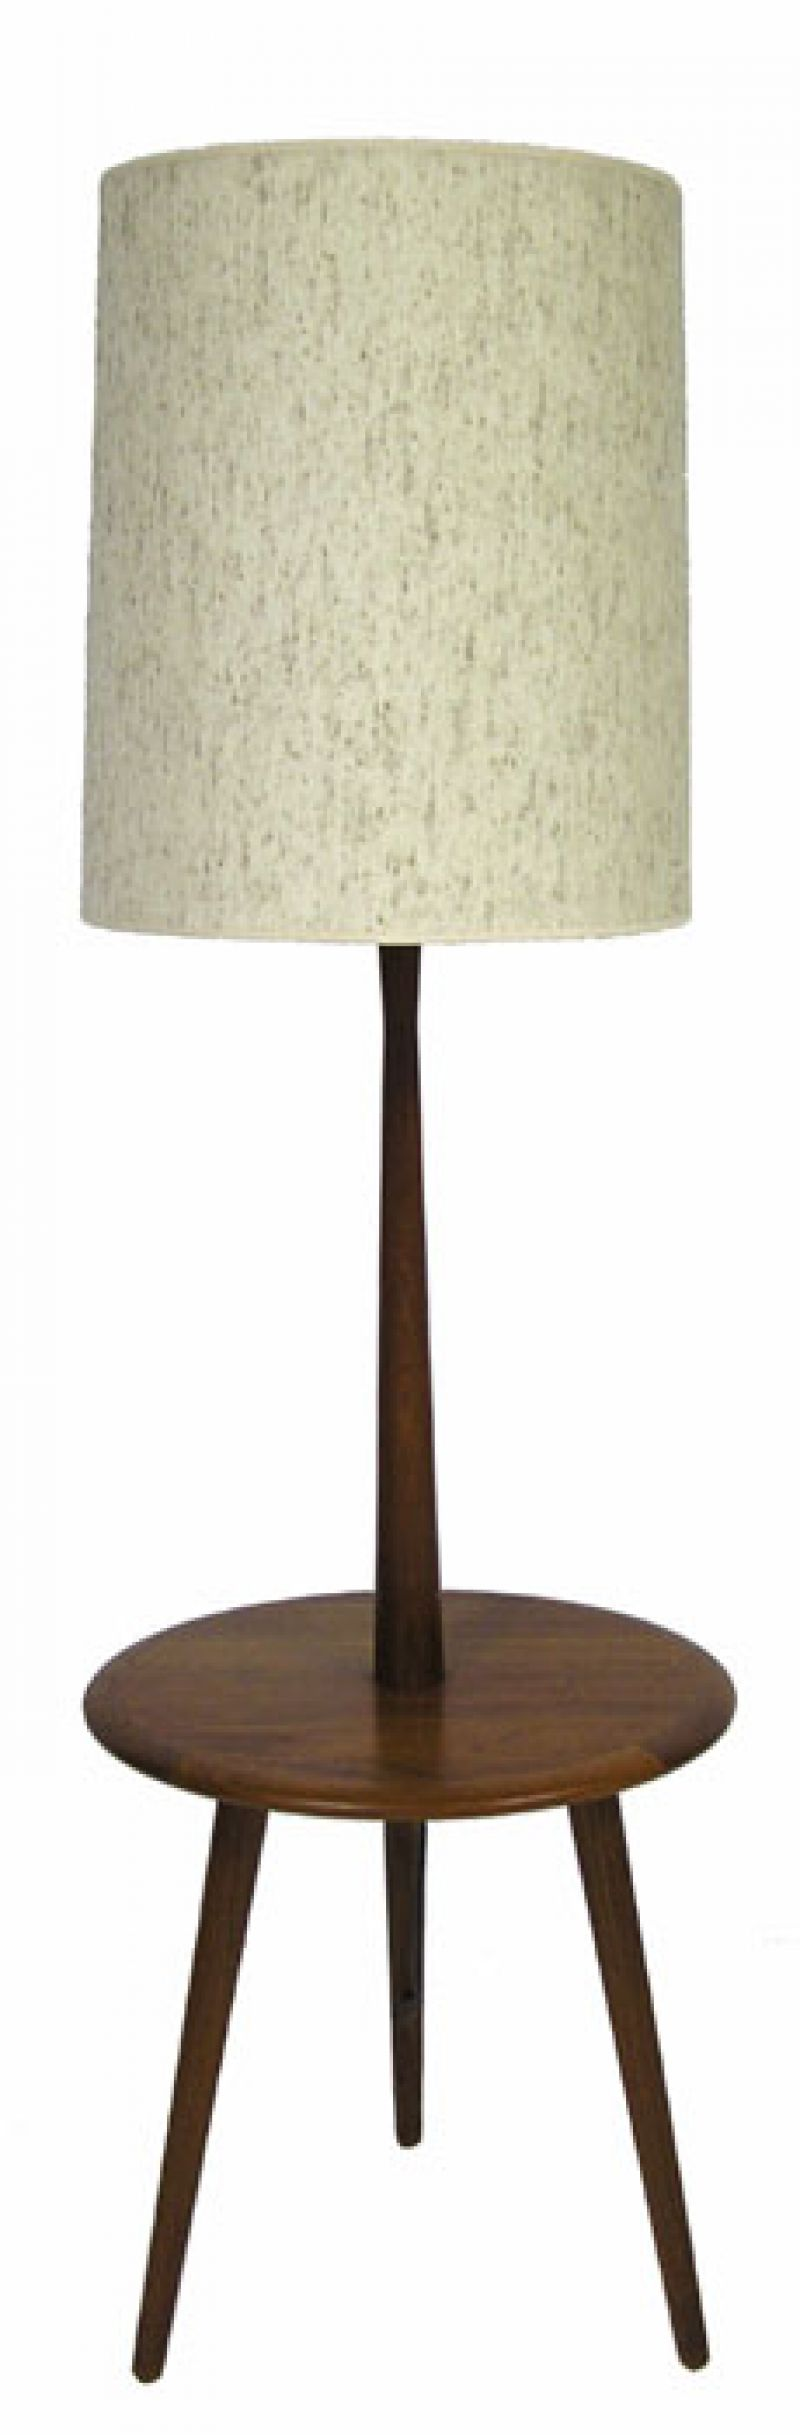 1960 70s teak floor lamp w attached table hoopers modern. Black Bedroom Furniture Sets. Home Design Ideas